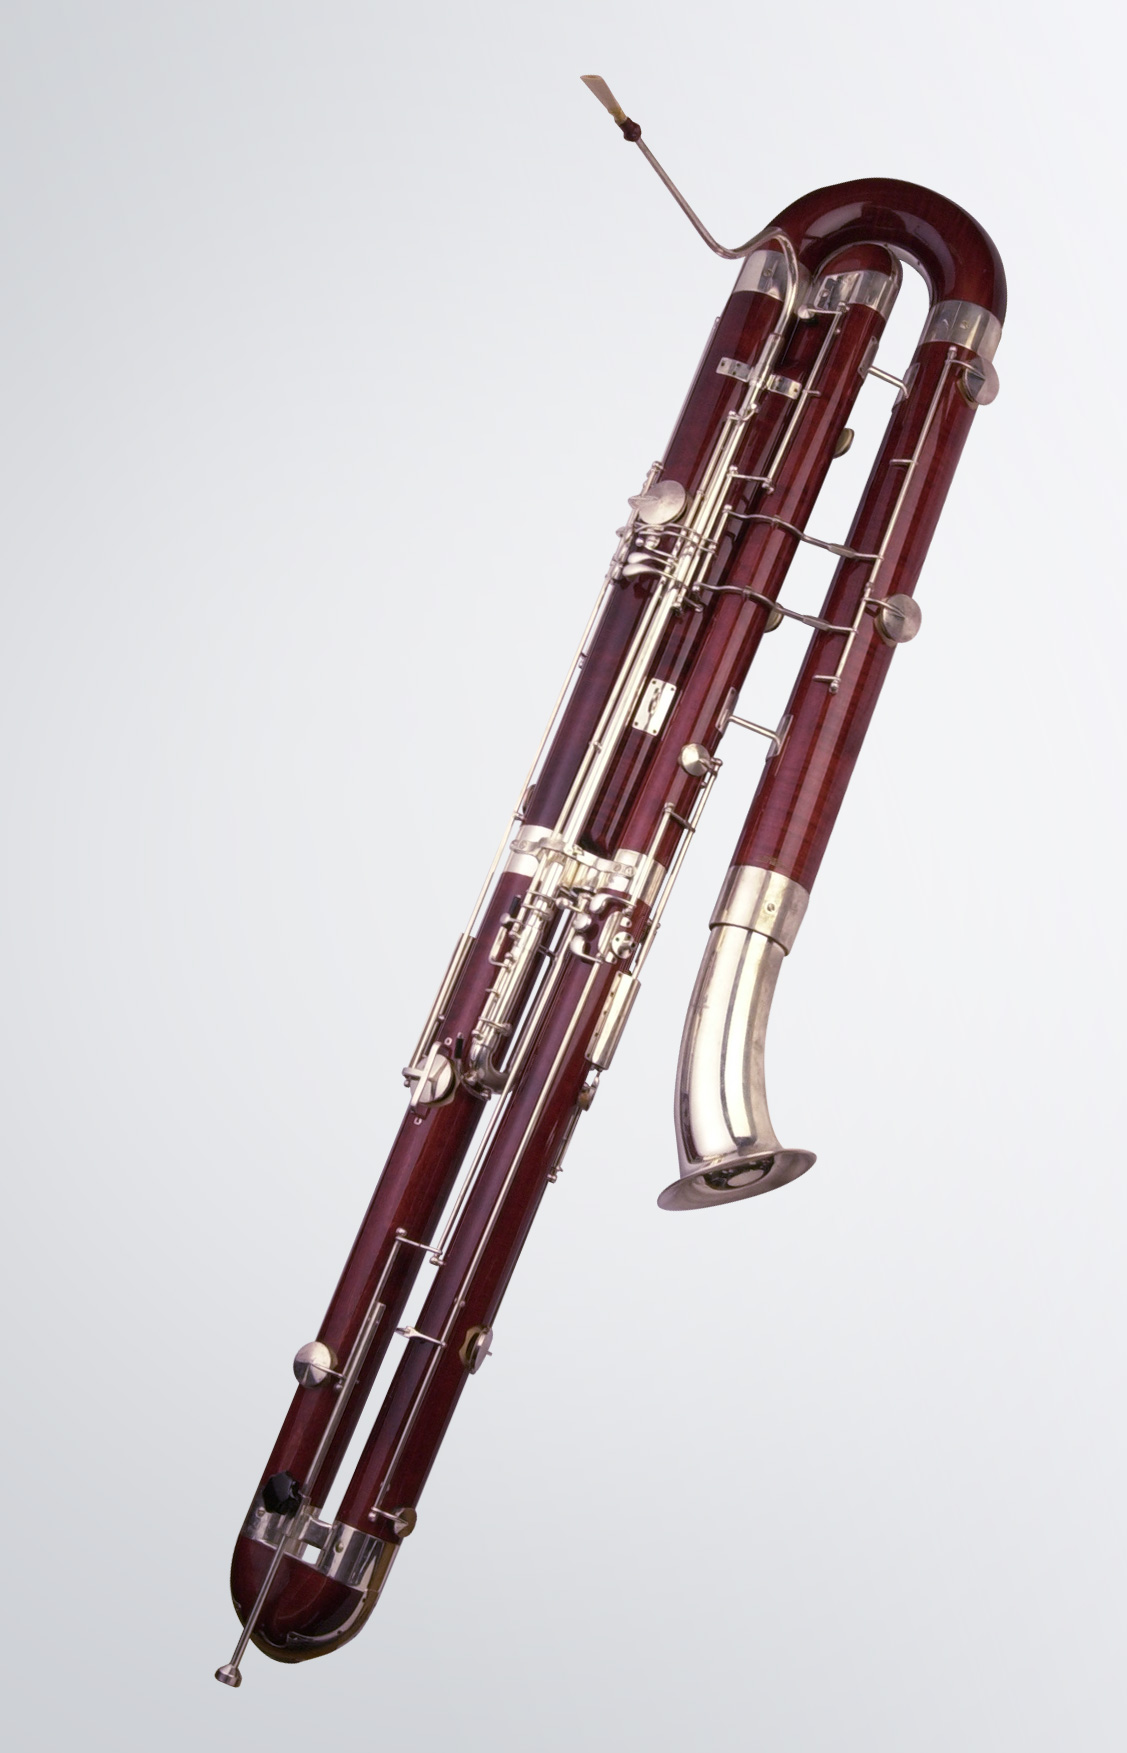 an analysis of the instrument bassoon in oboe family The bassoon is one of the most intriguing members of the woodwind family bassoon and its kid brother the oboe instrument makers tweaked the bassoon.